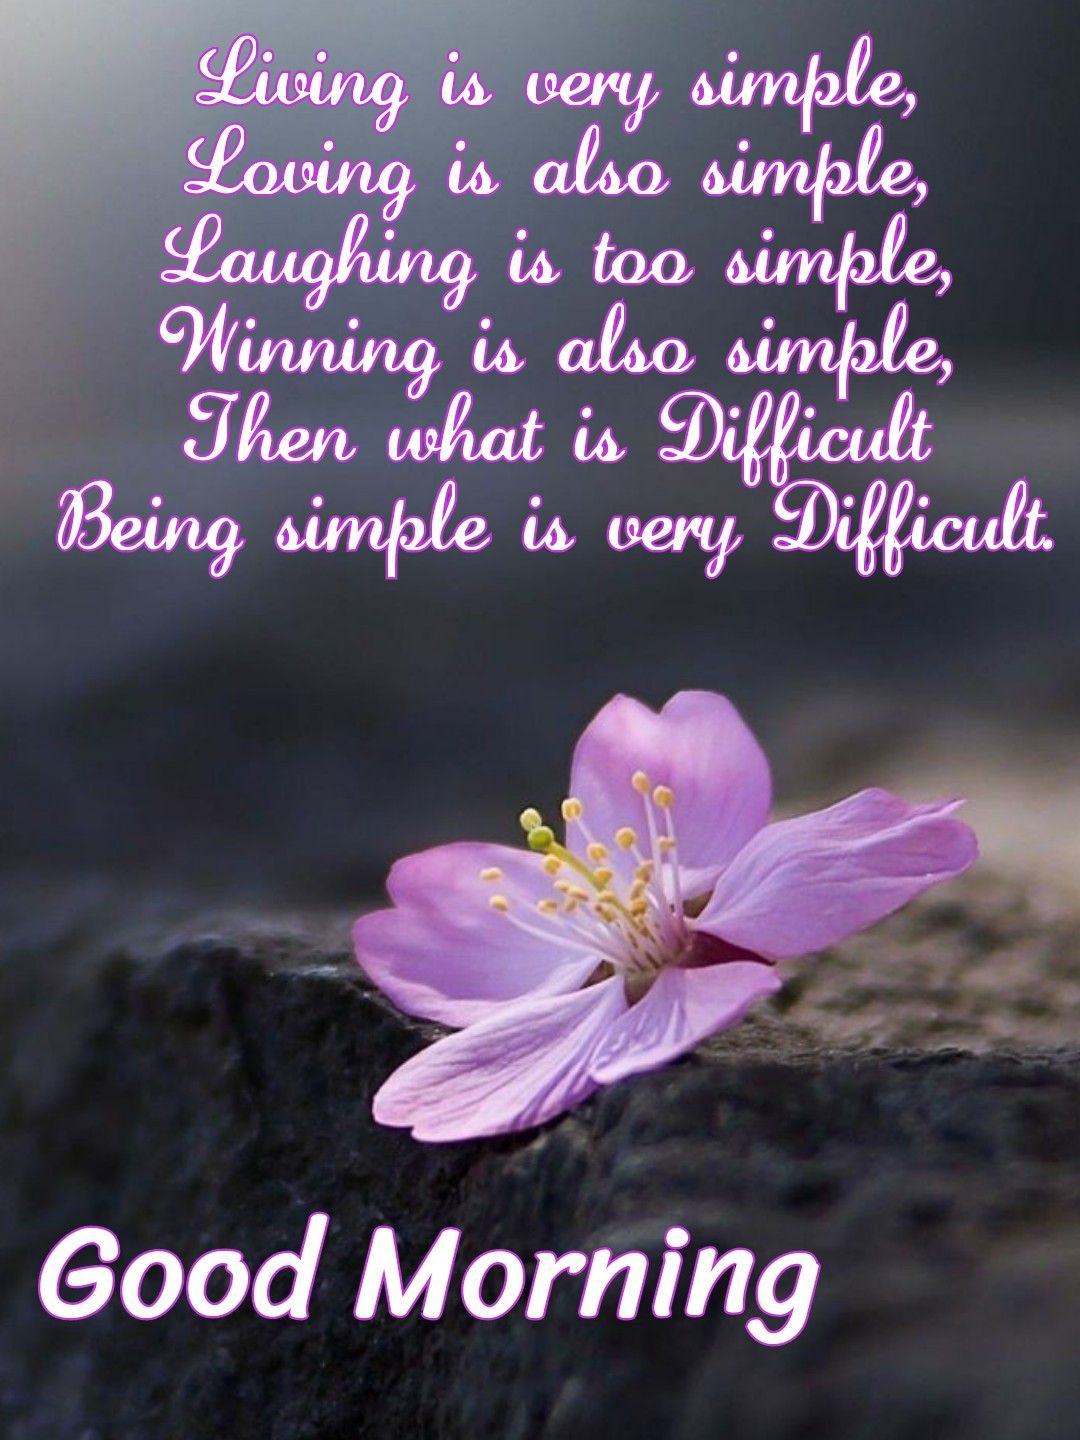 Good Morning Living Is Very Simple Good Morning Quotes Morning Inspirational Quotes Good Morning Friends Quotes